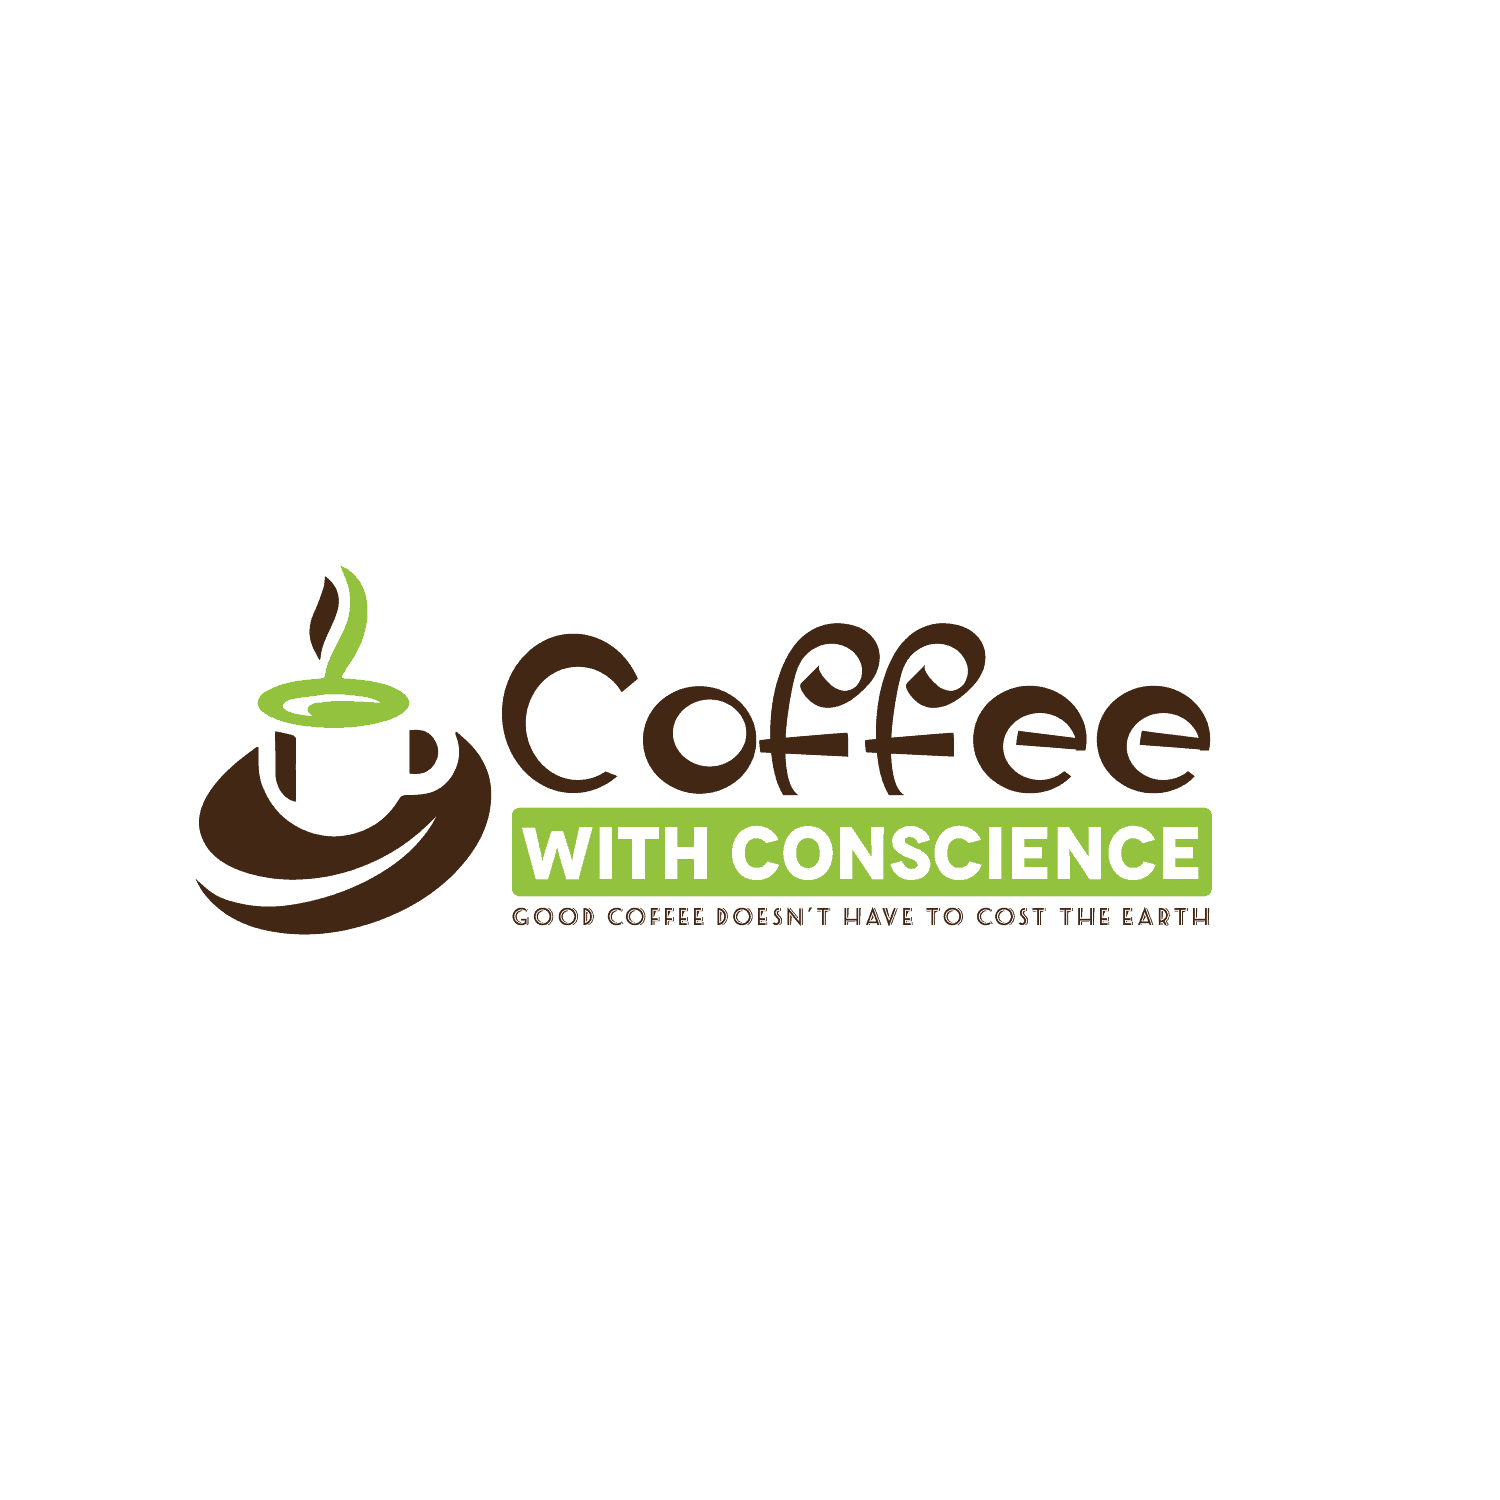 Coffee with Conscience Logo